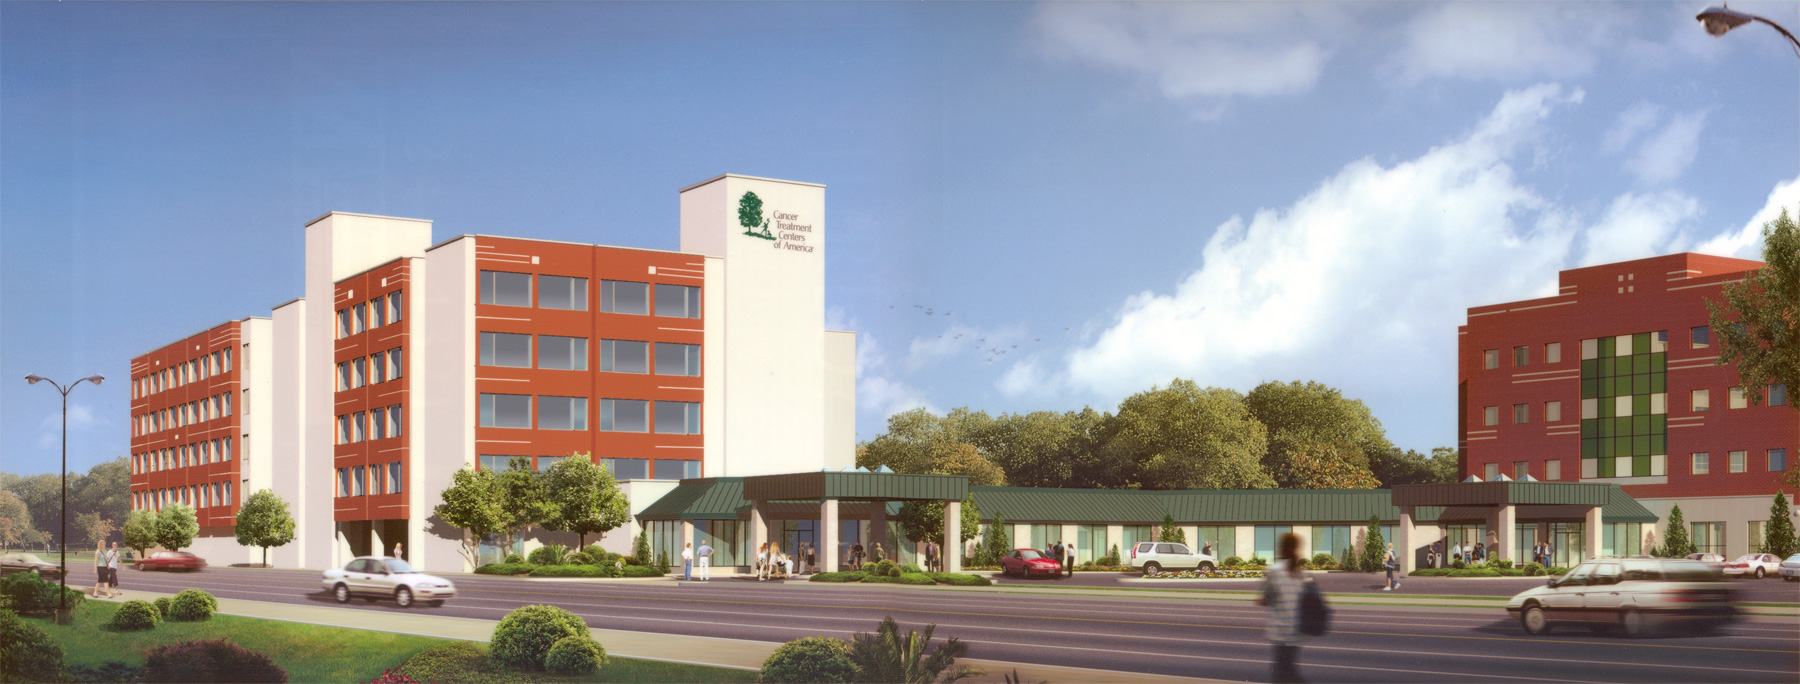 Final rendering of CTCA-Philadelphia facade graphics